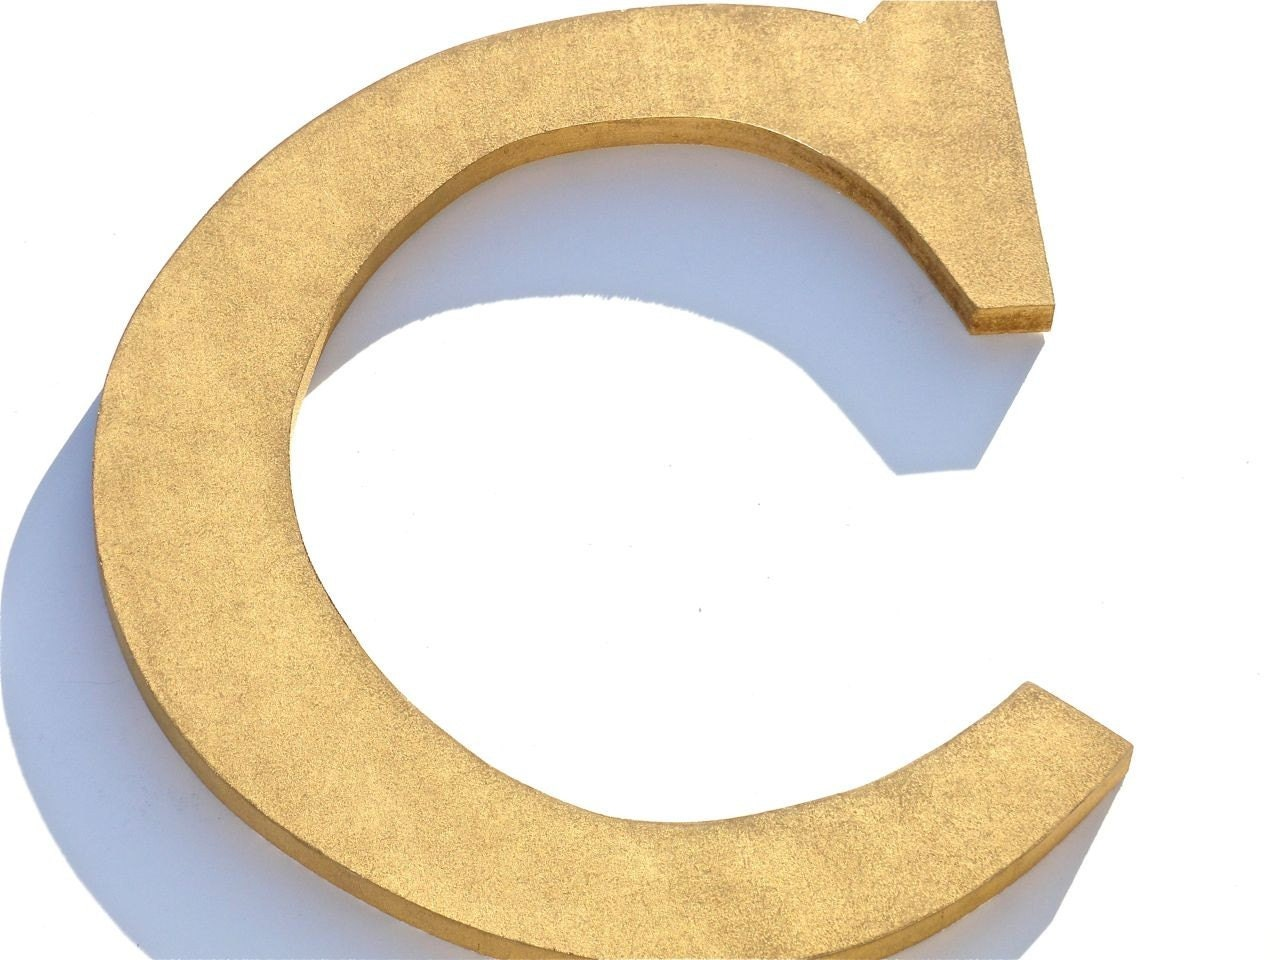 letter c wall decor items similar to custom wood gold letter c wall decor 22784 | il fullxfull.225540551